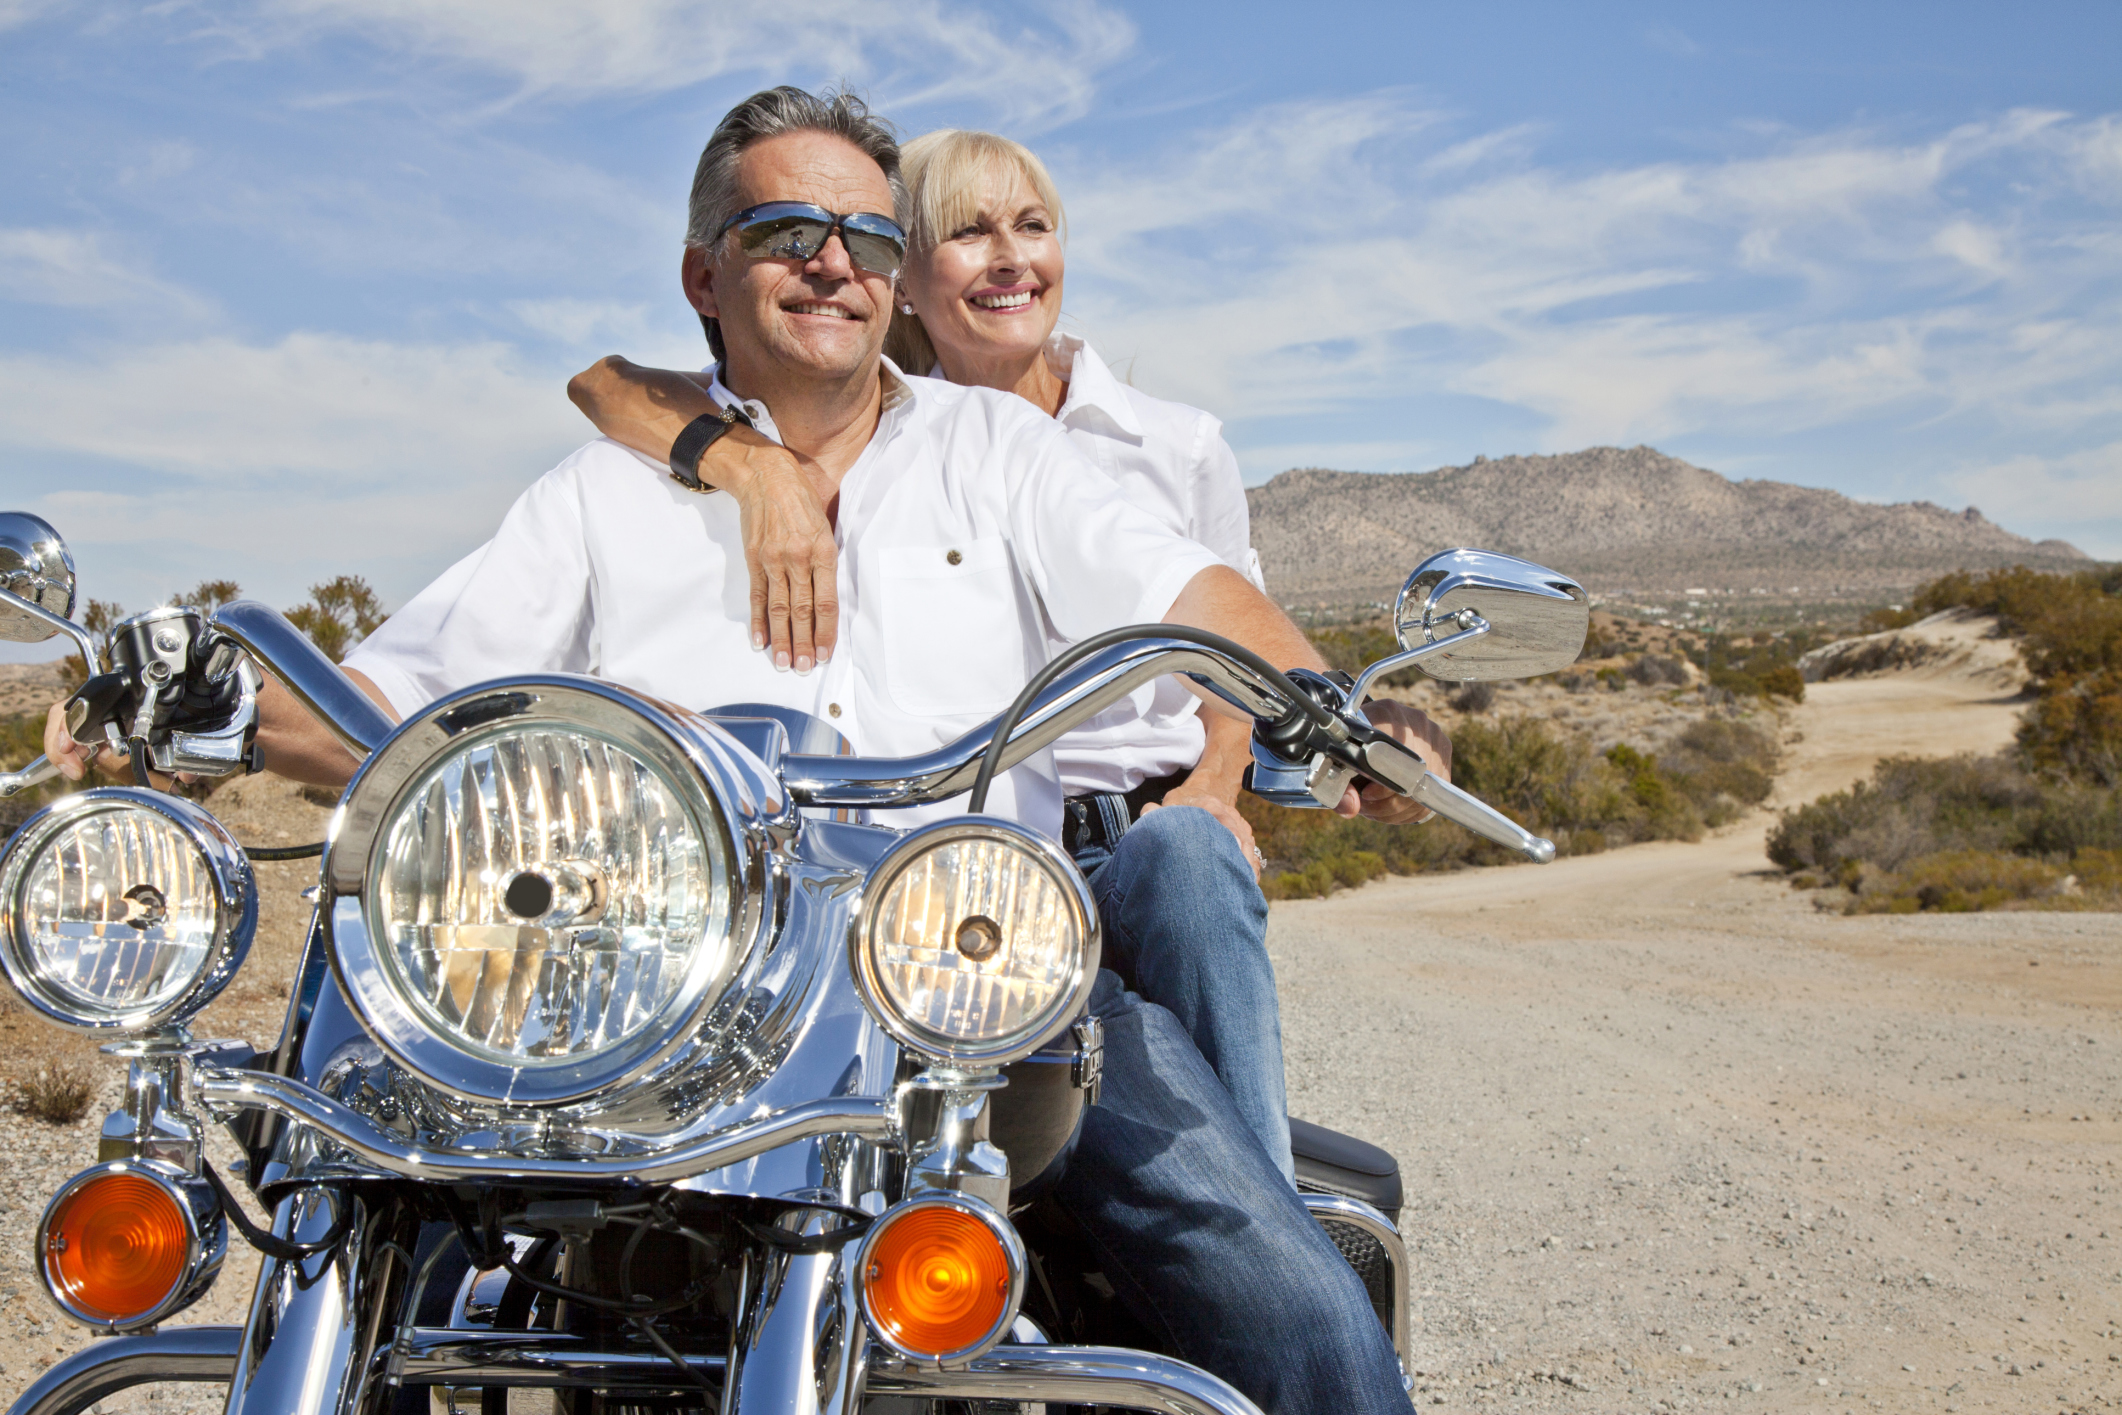 3 of the Top Destinations for Empty Nesters